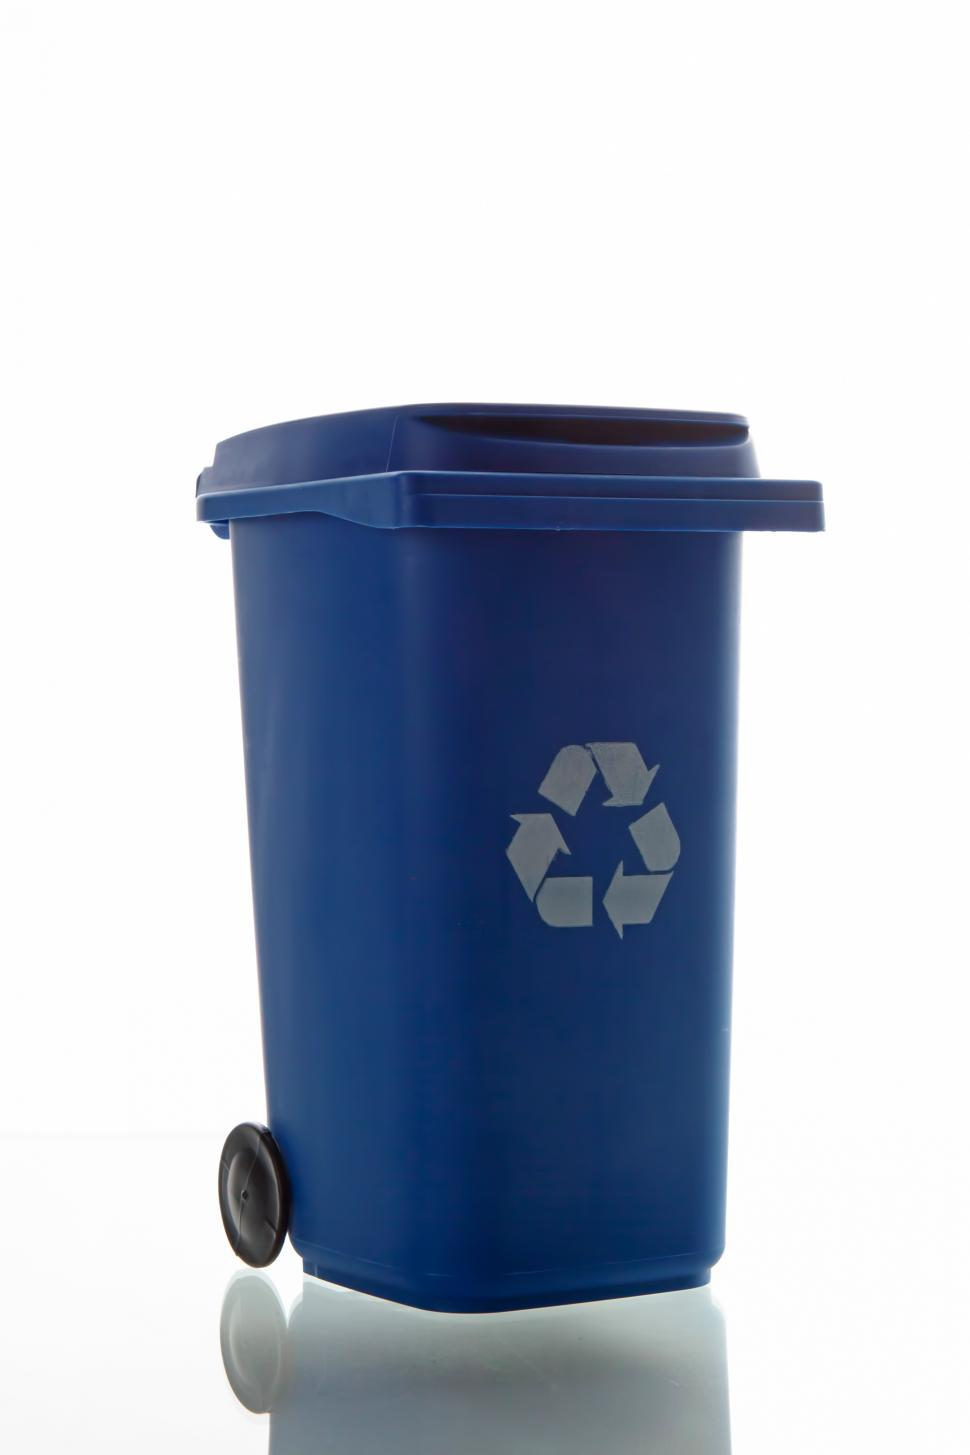 Download Free Stock Photo of Recycle bin